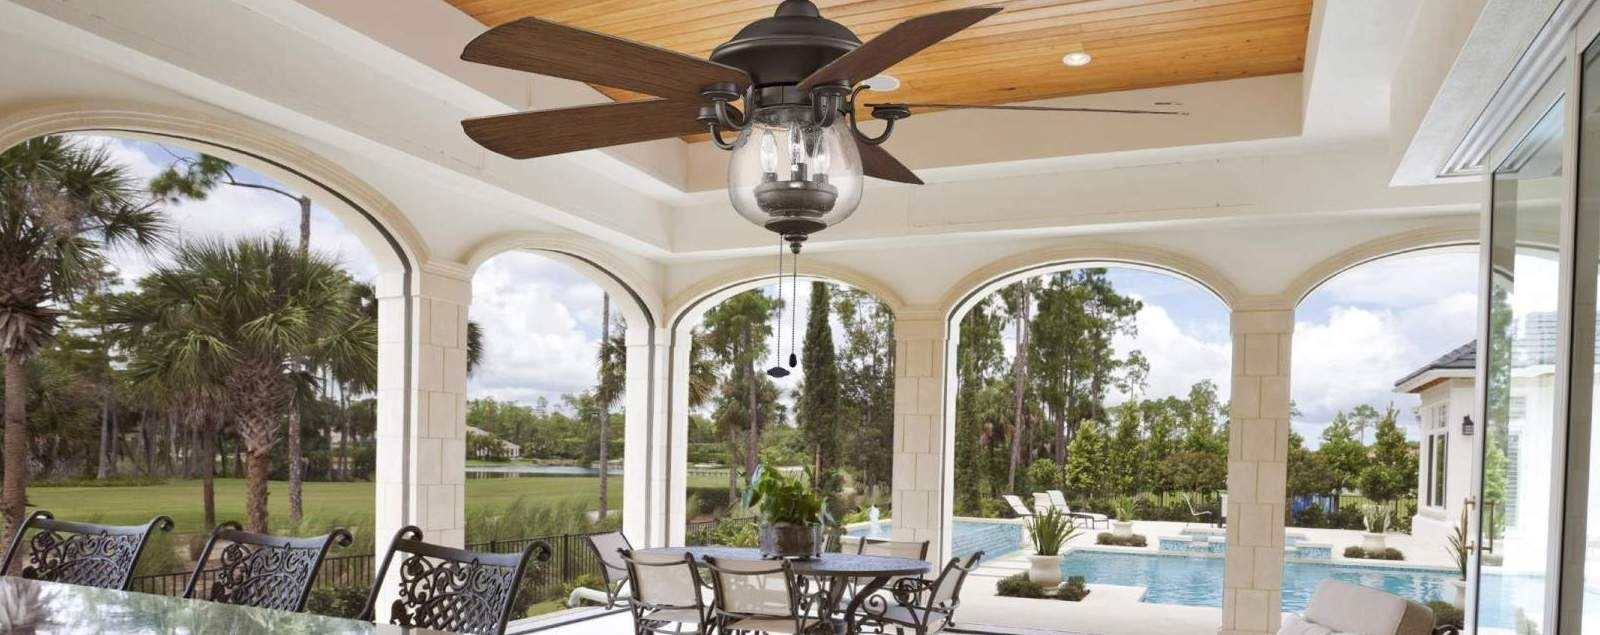 Well Known Outdoor Ceiling Fans – Shop Wet, Dry, And Damp Rated Outdoor Fans Throughout Outdoor Rated Ceiling Fans With Lights (View 16 of 20)